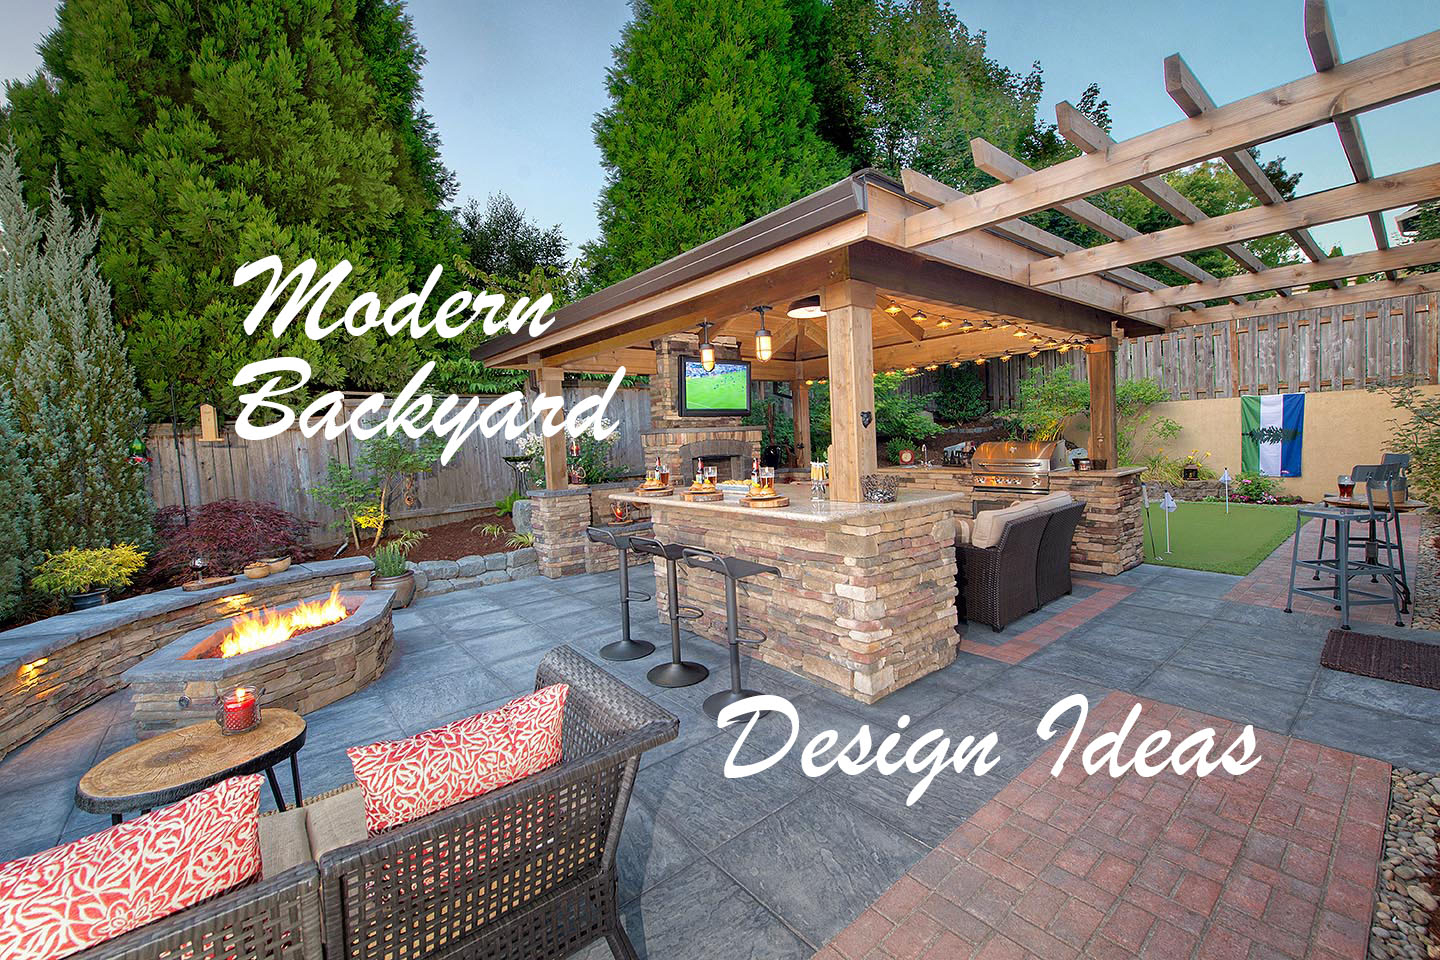 Modern Backyard Design Ideas Paradise Restored Landscaping with 15 Awesome Concepts of How to Make Modern Backyard Design Ideas